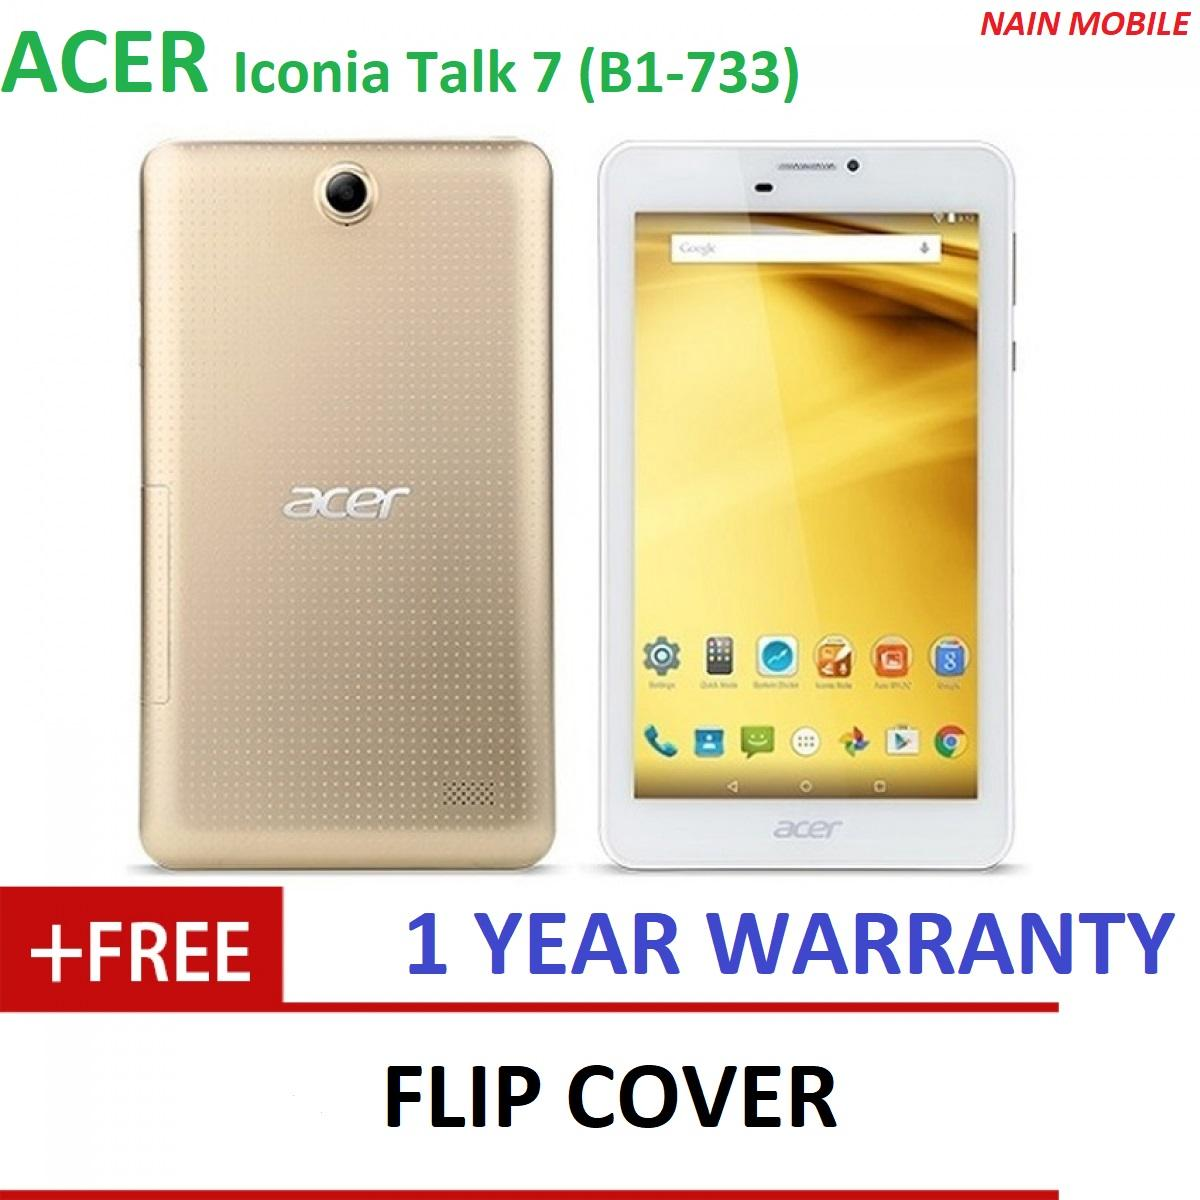 Acer Iconia Talk 7 B1-733 16GB WiFi + 3G with Phone Function Tablet ( 1 YEAR WARRANTY)